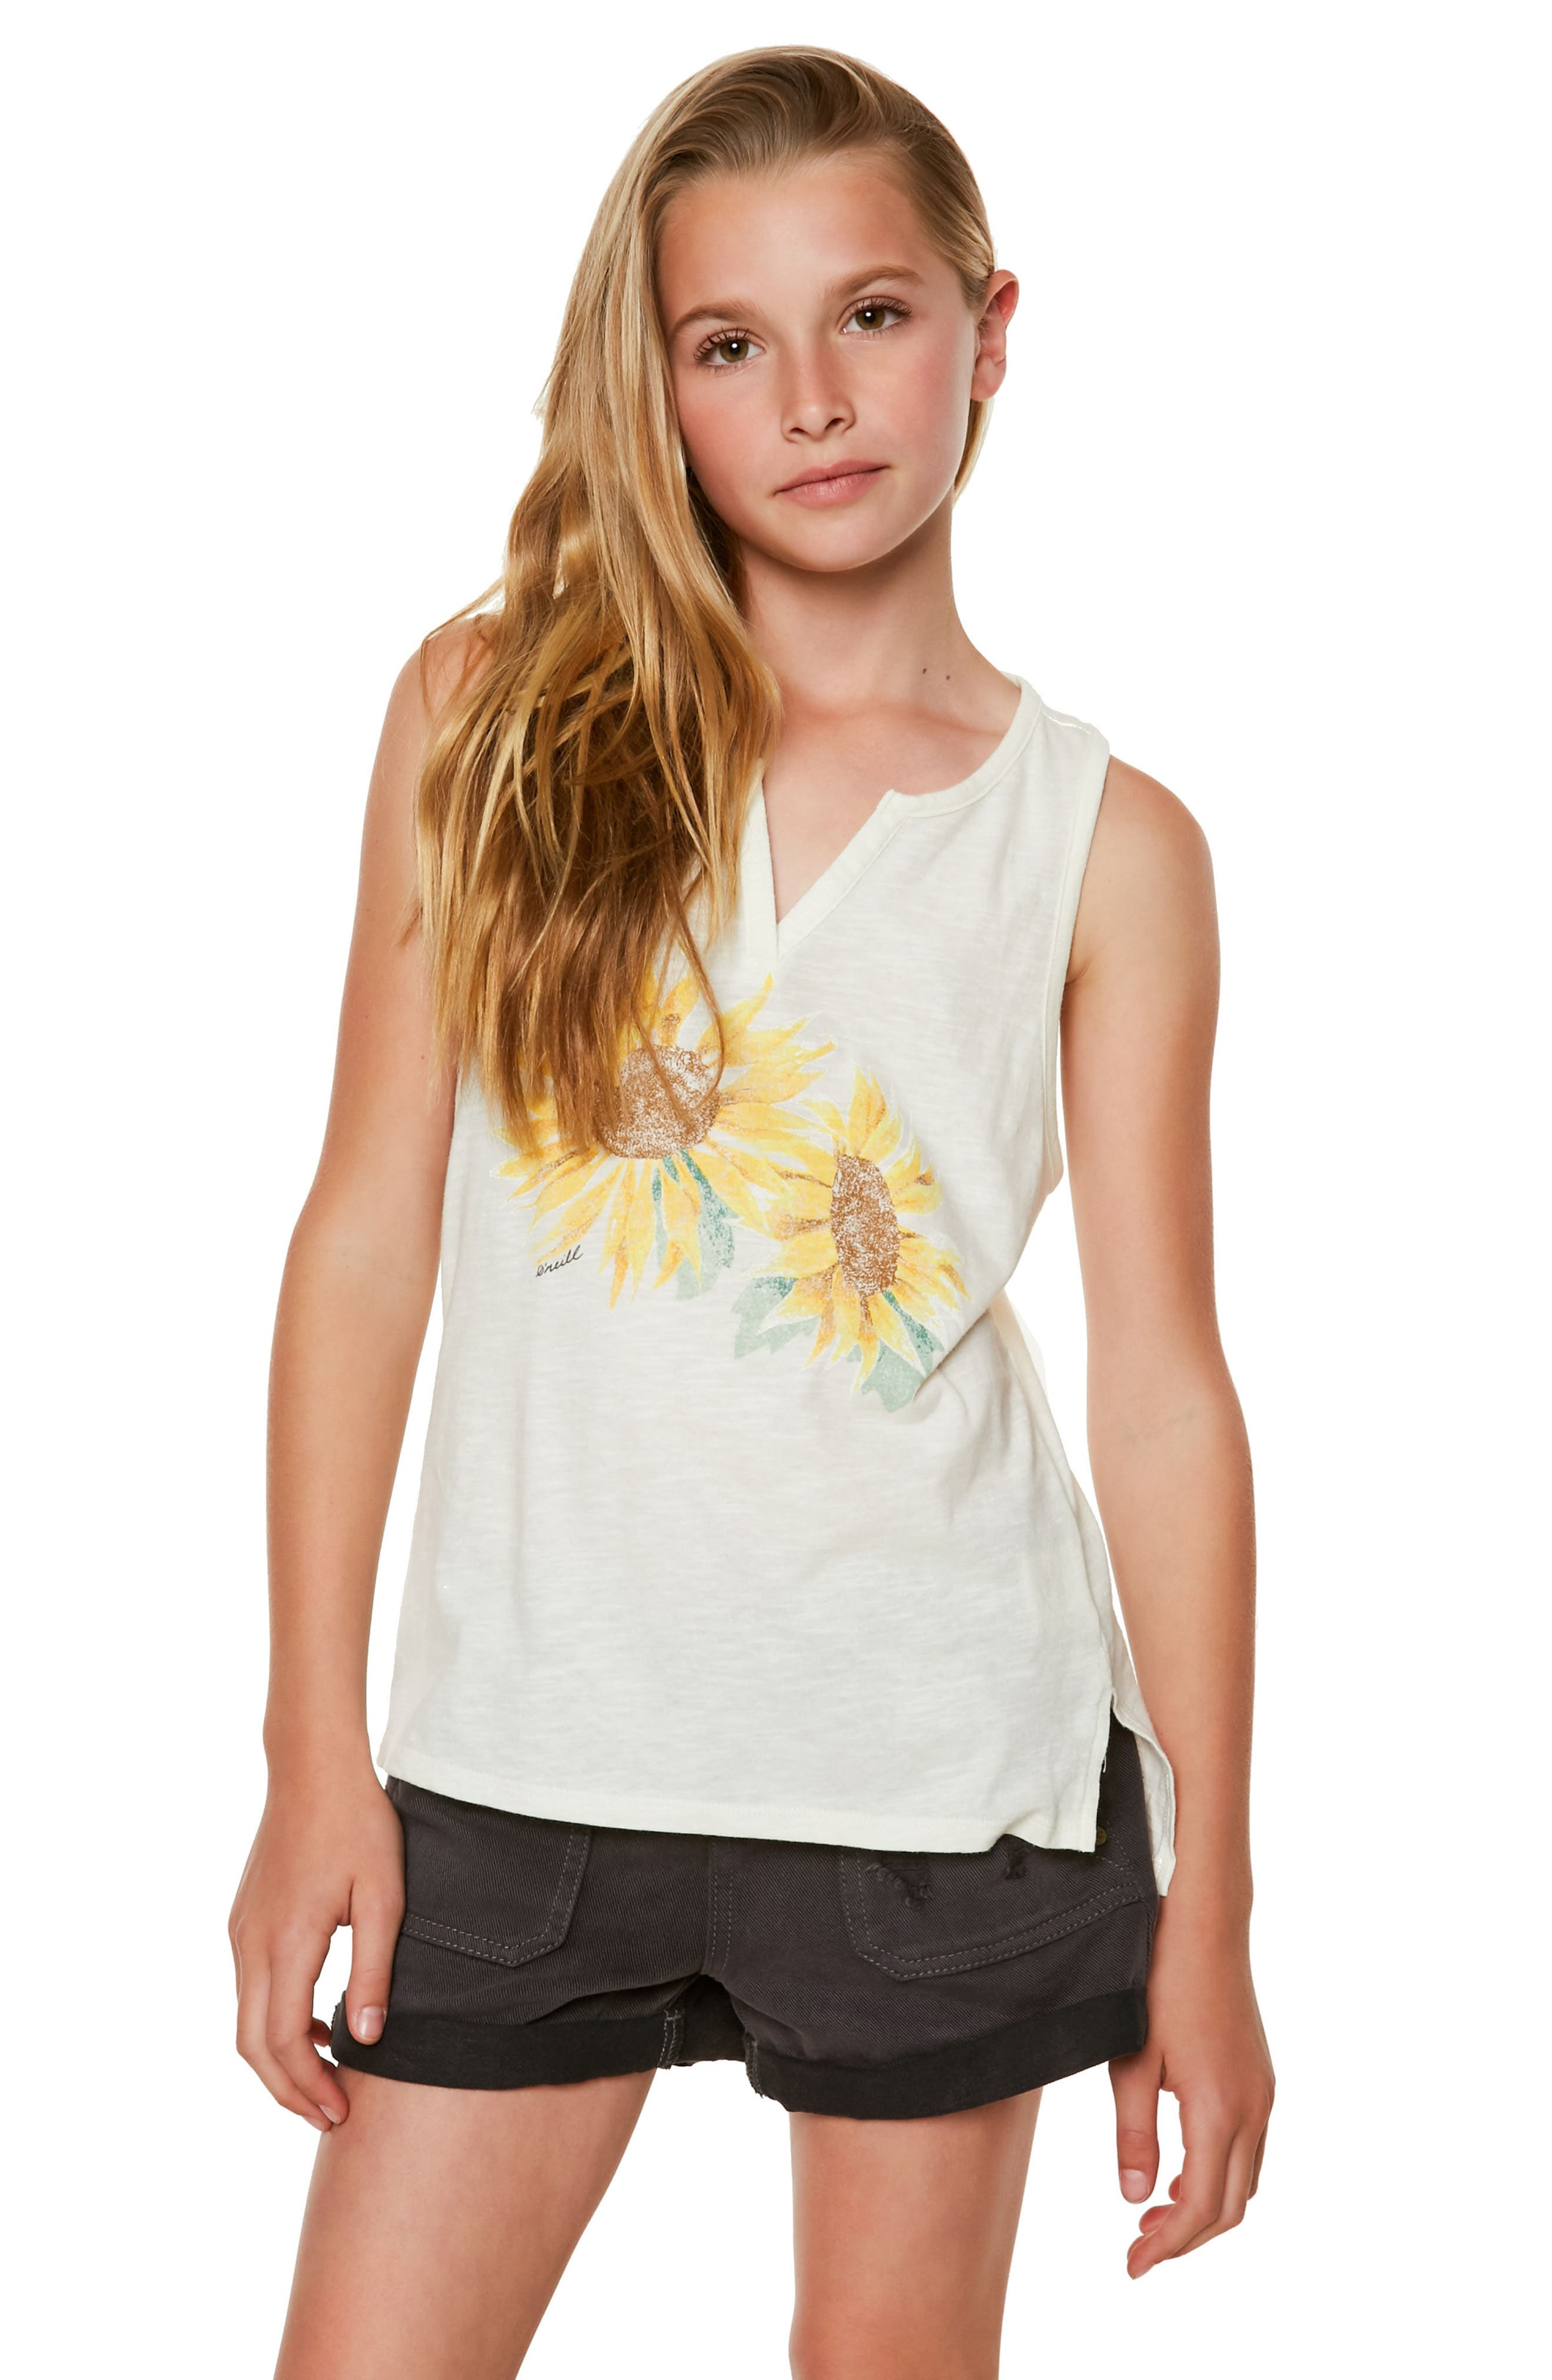 O'NEILL,                             Soleil Graphic Tank,                             Alternate thumbnail 2, color,                             250